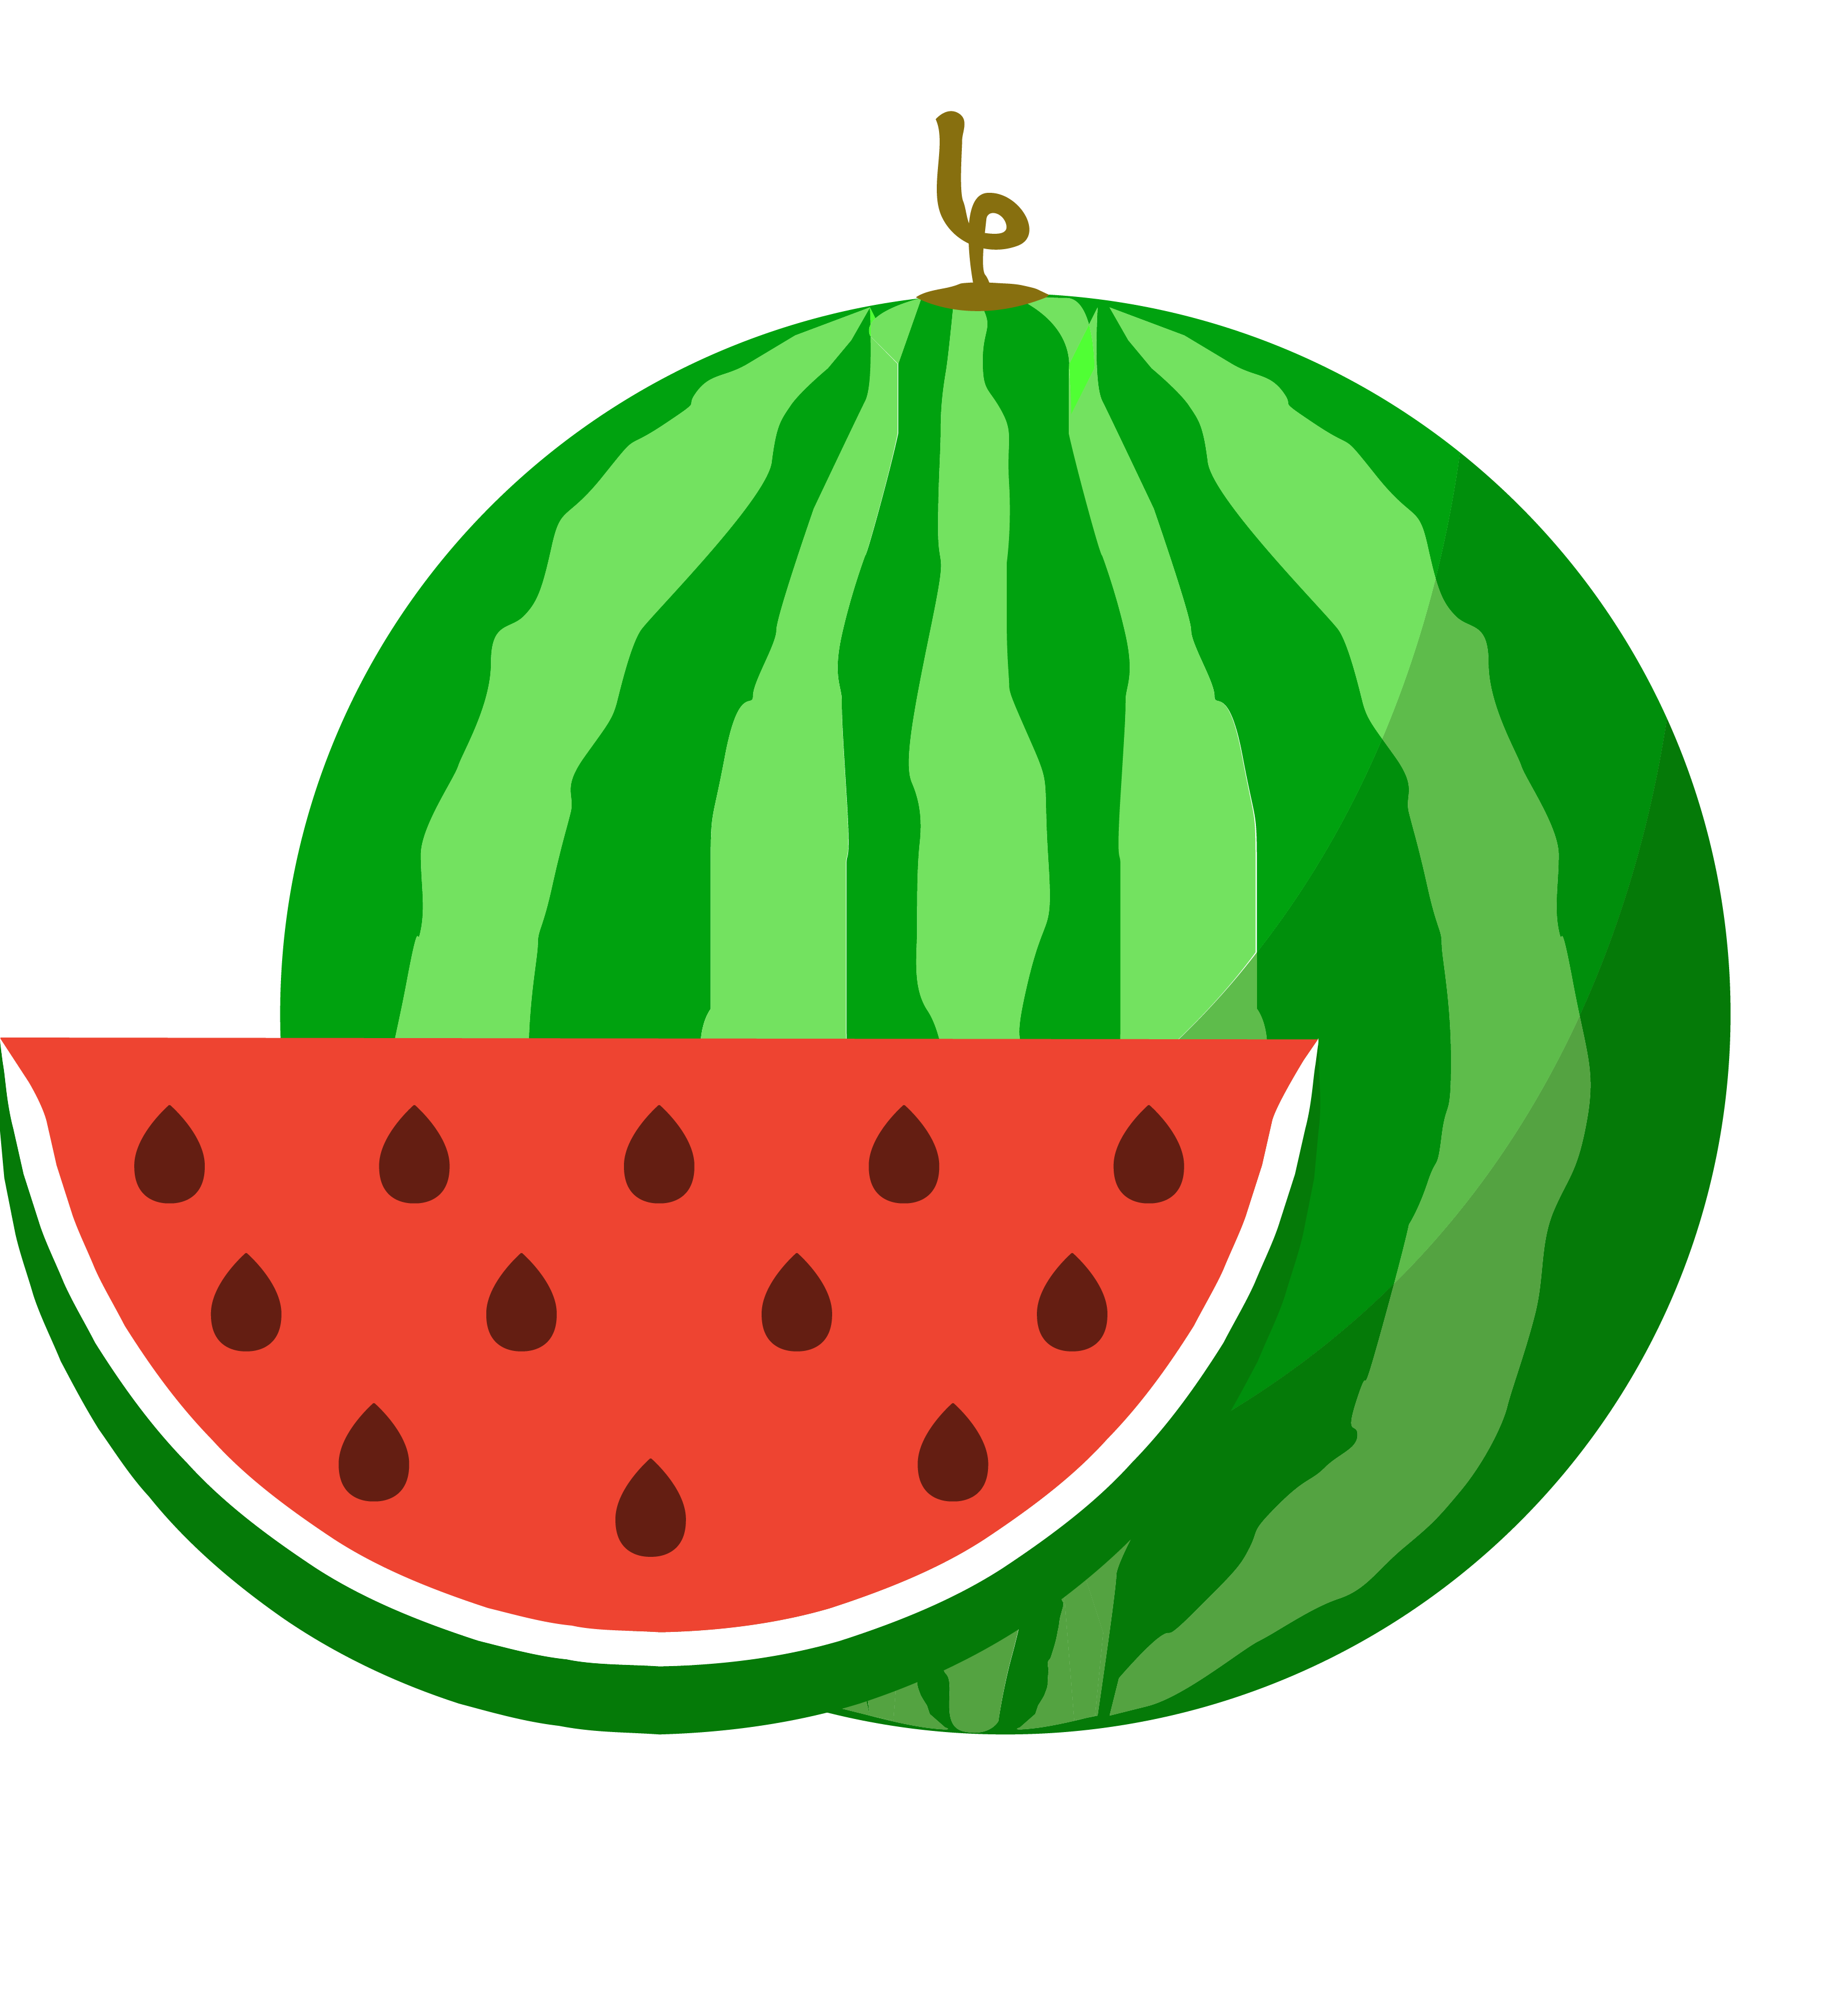 Icon png transprent free. Watermelon clipart cucumber melon